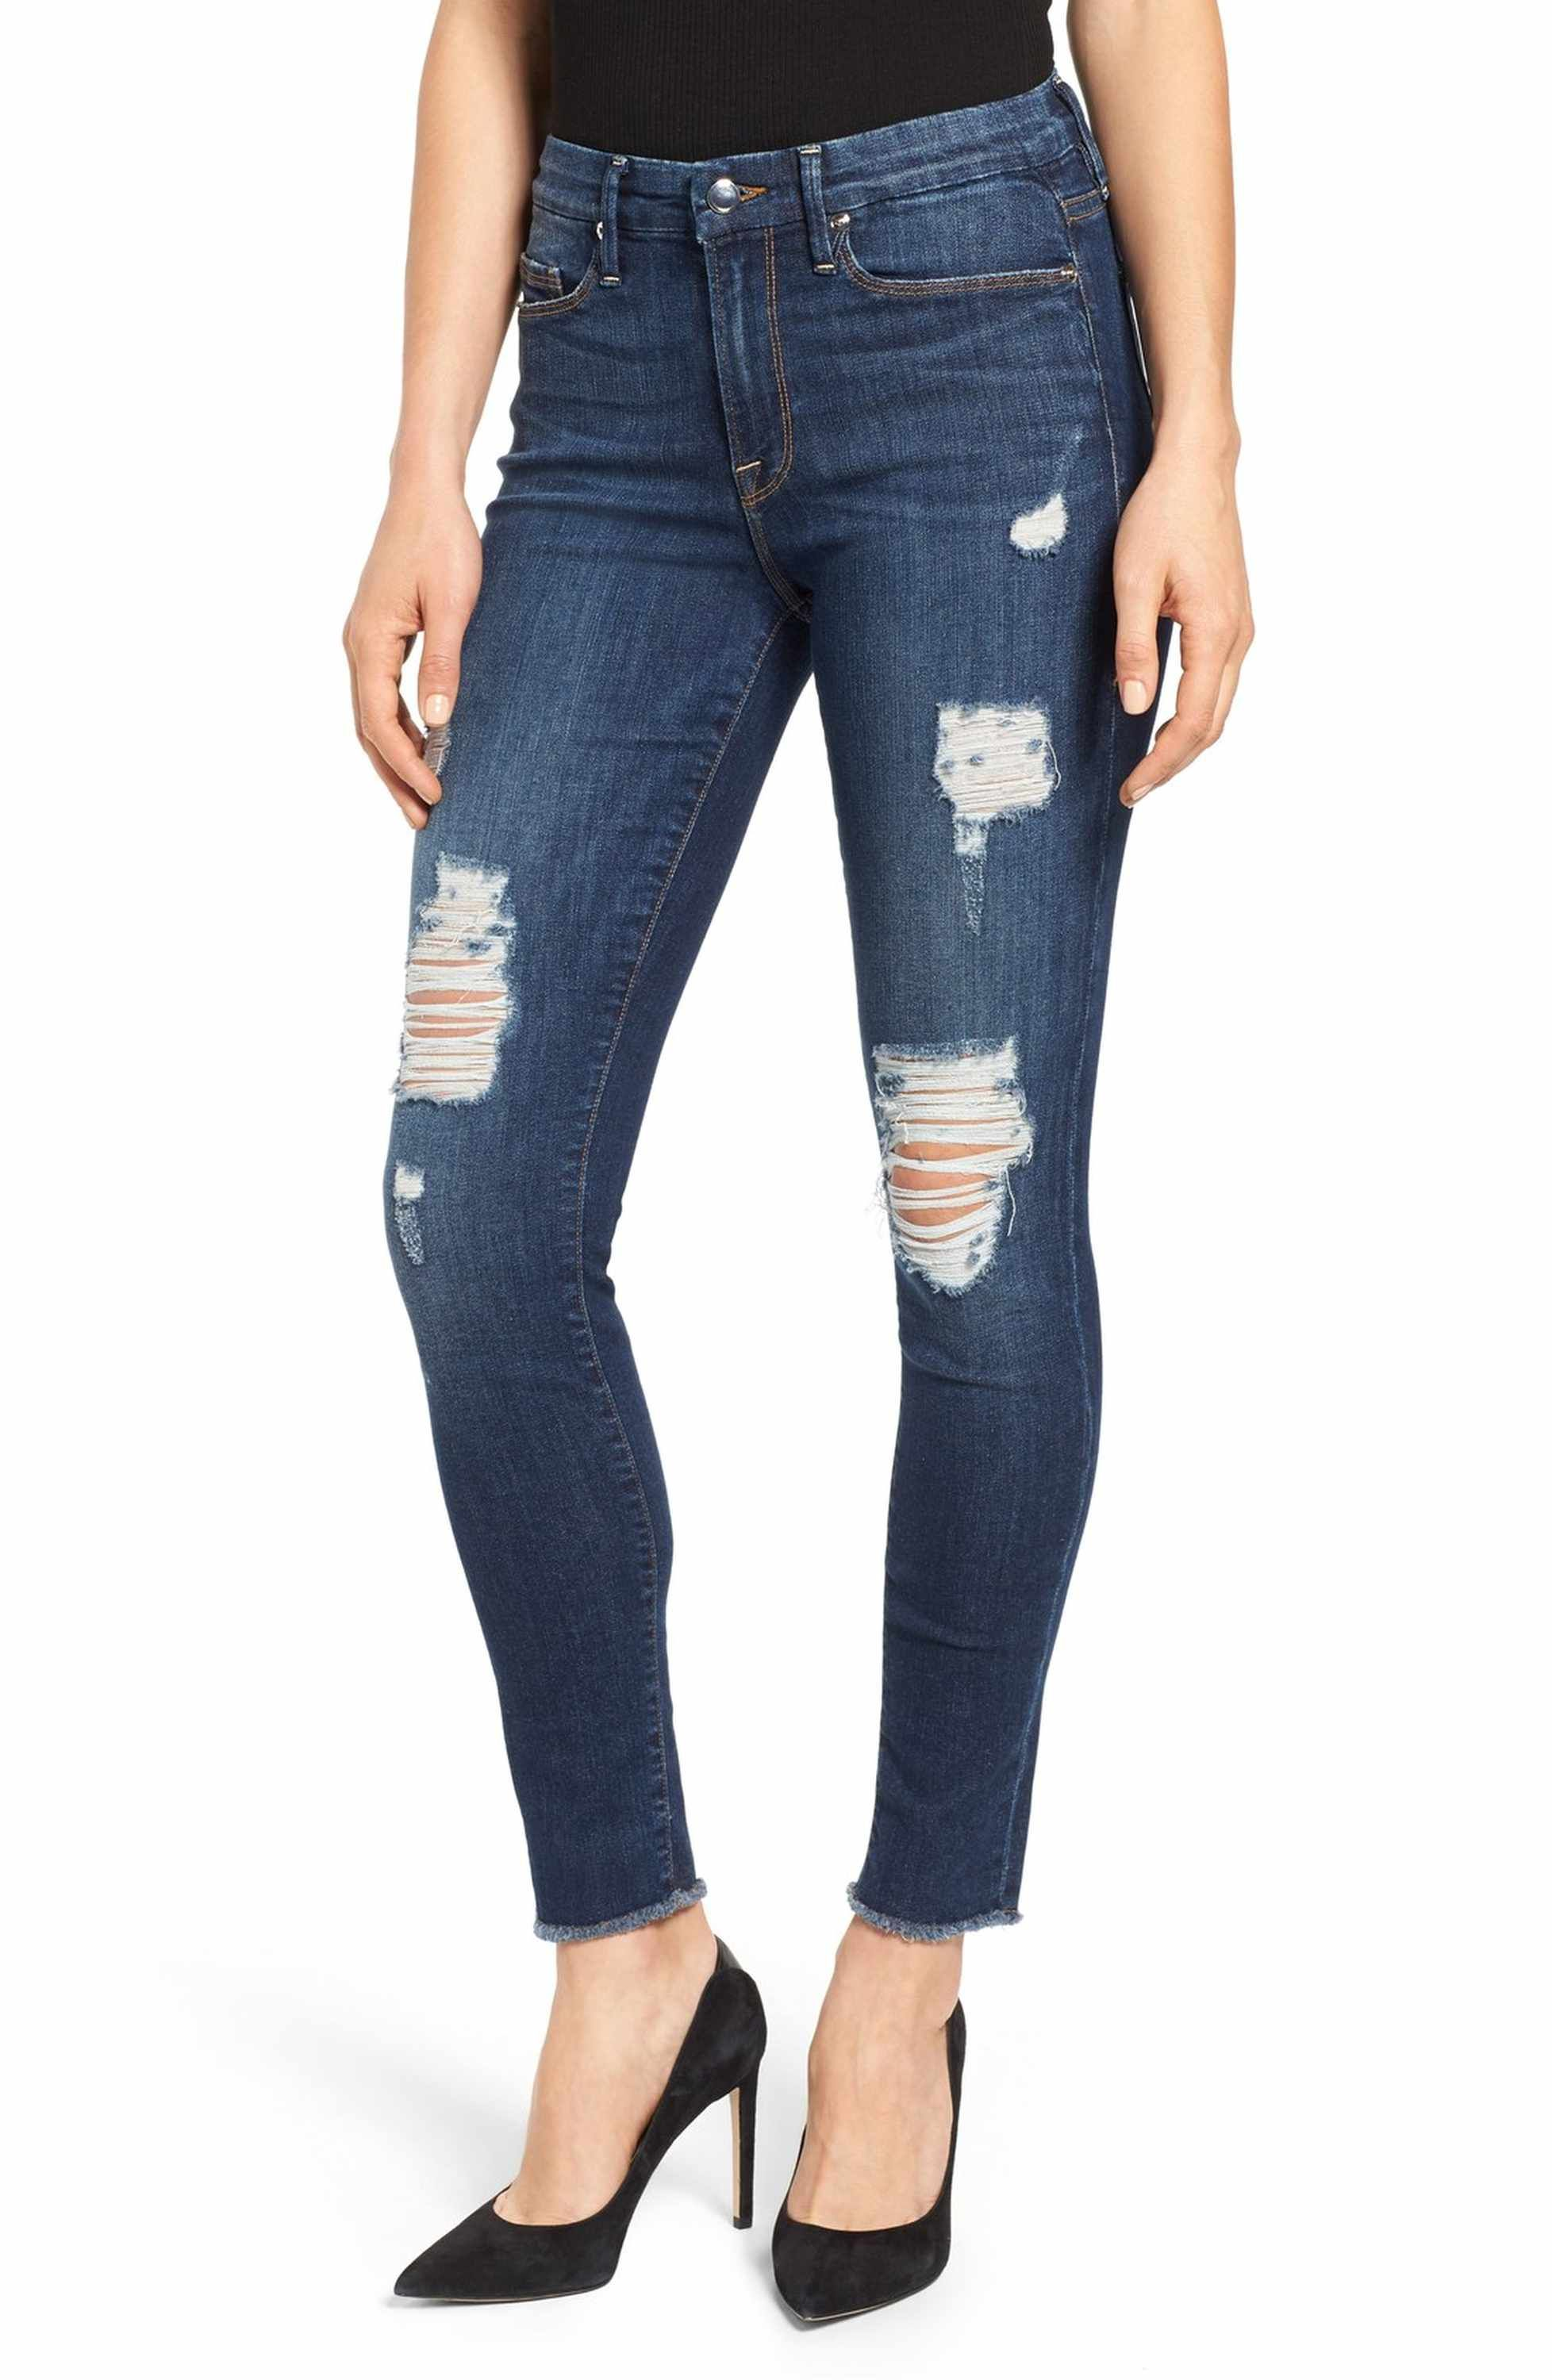 998346e01f3 Main Image - Good American Good Legs High Rise Ripped Skinny Jeans (Blue  003) (Extended Sizes)